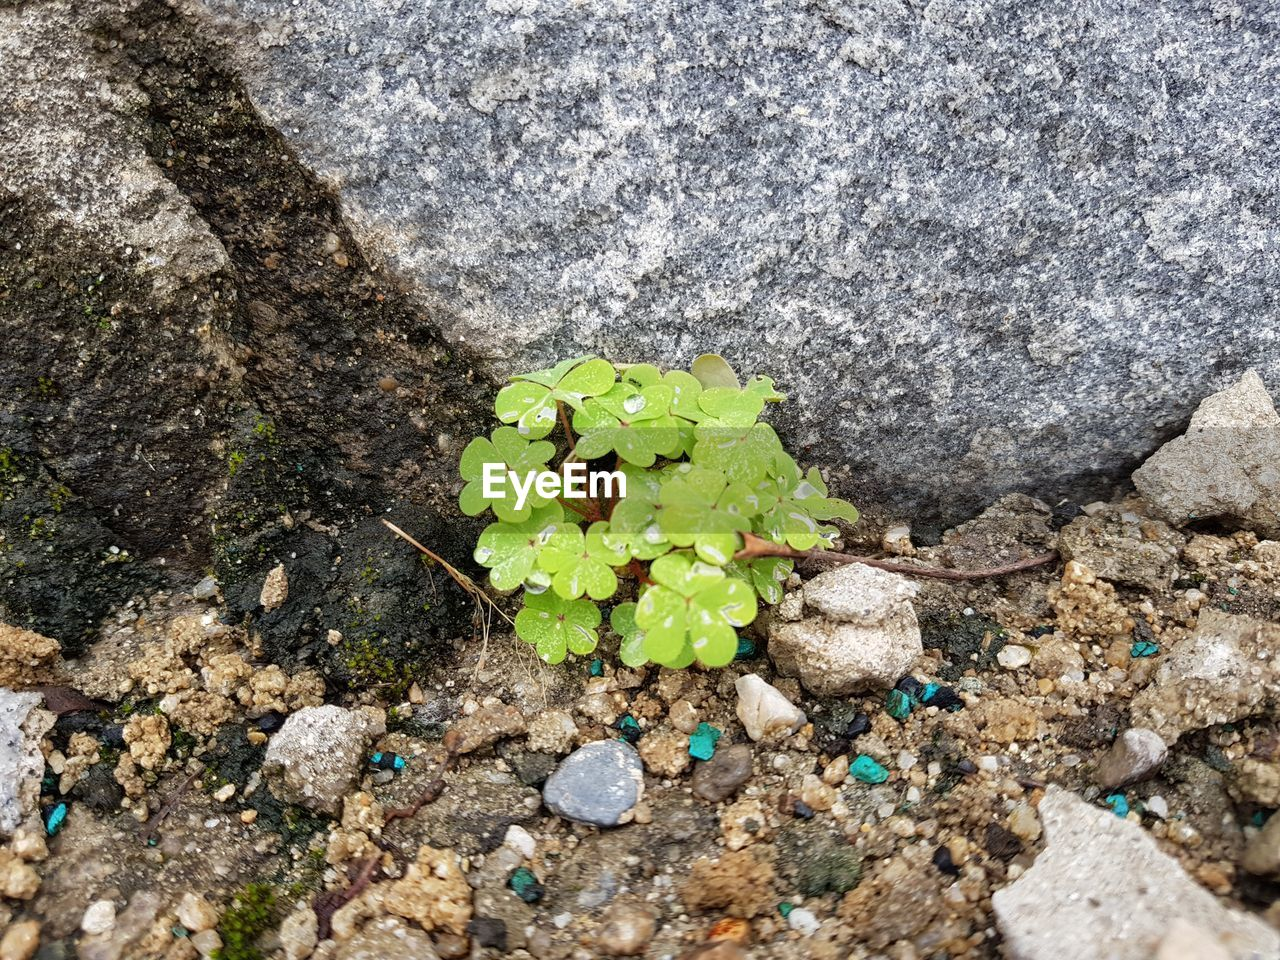 rock - object, high angle view, no people, green color, day, nature, outdoors, close-up, leaf, fragility